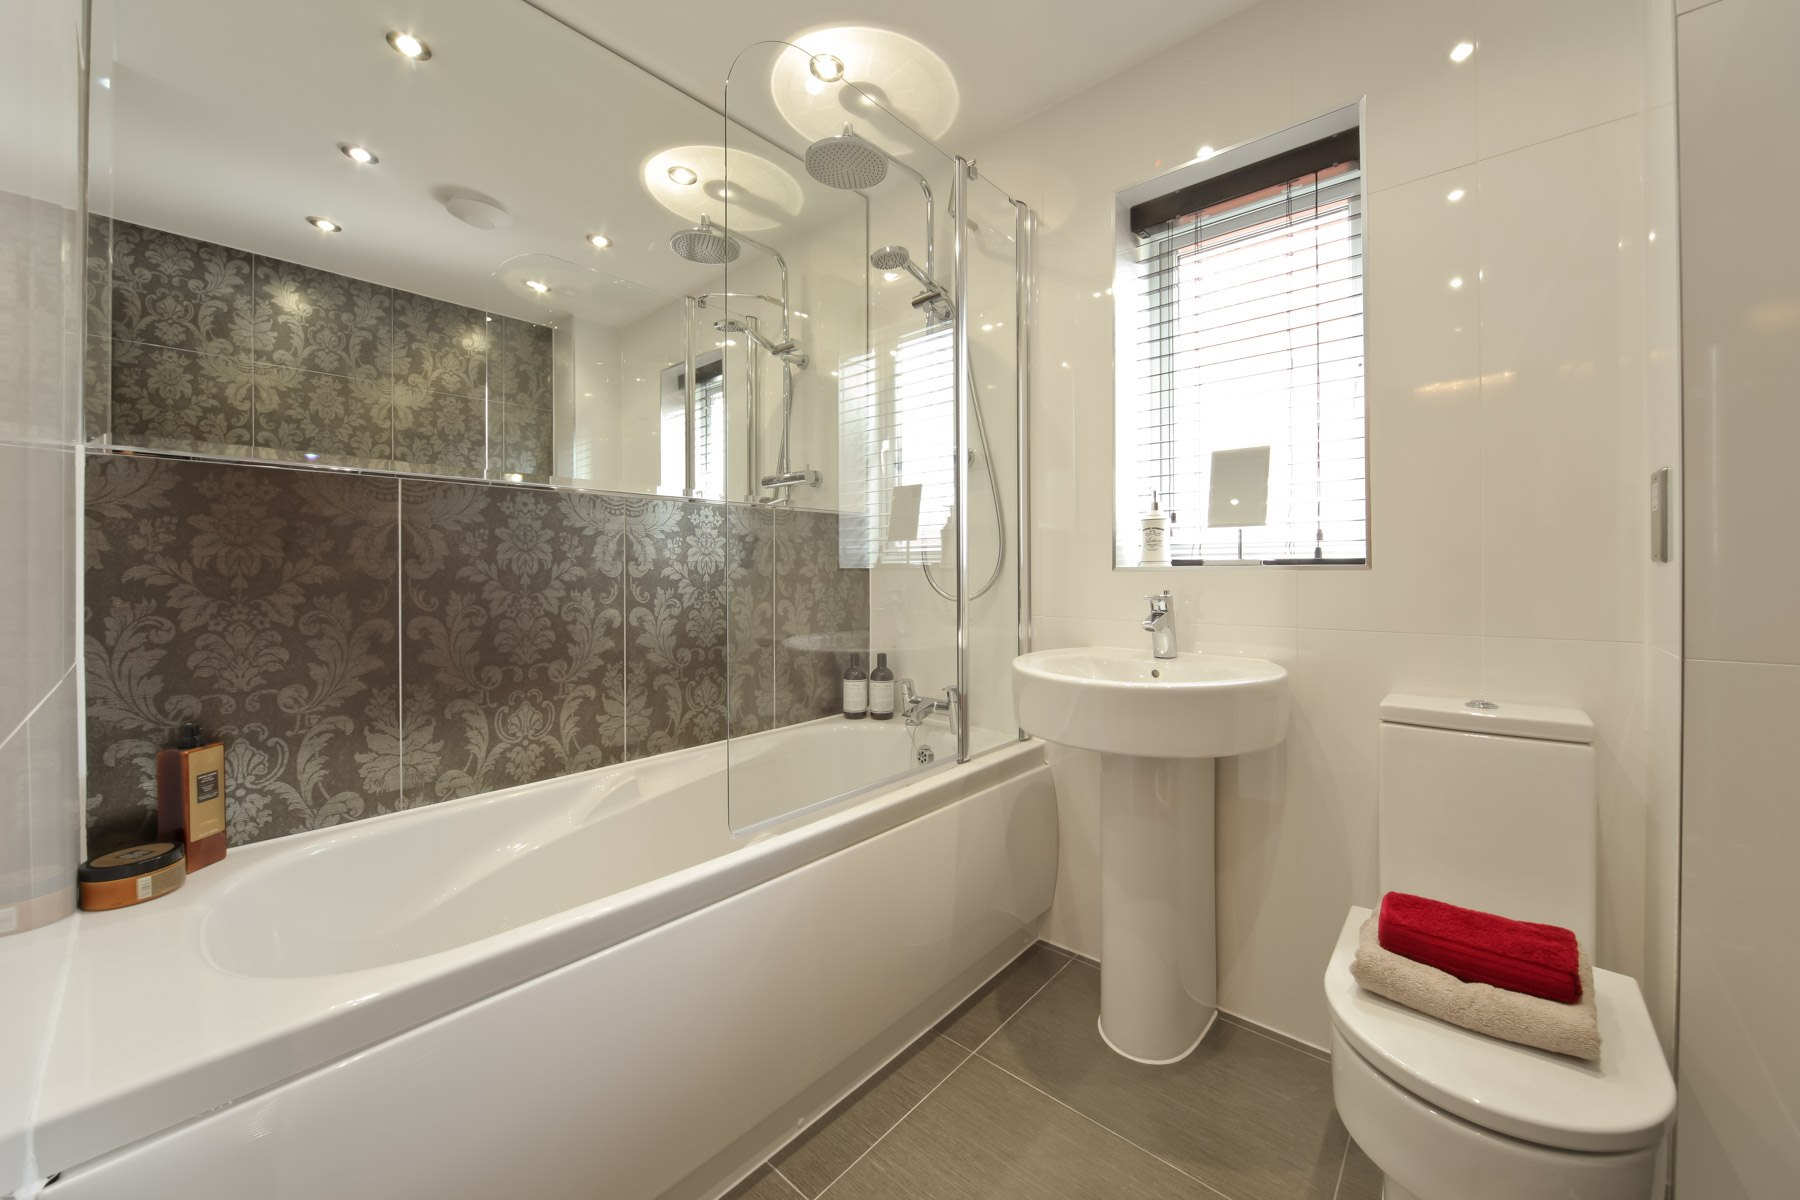 023_WV_Downham_Bathroom